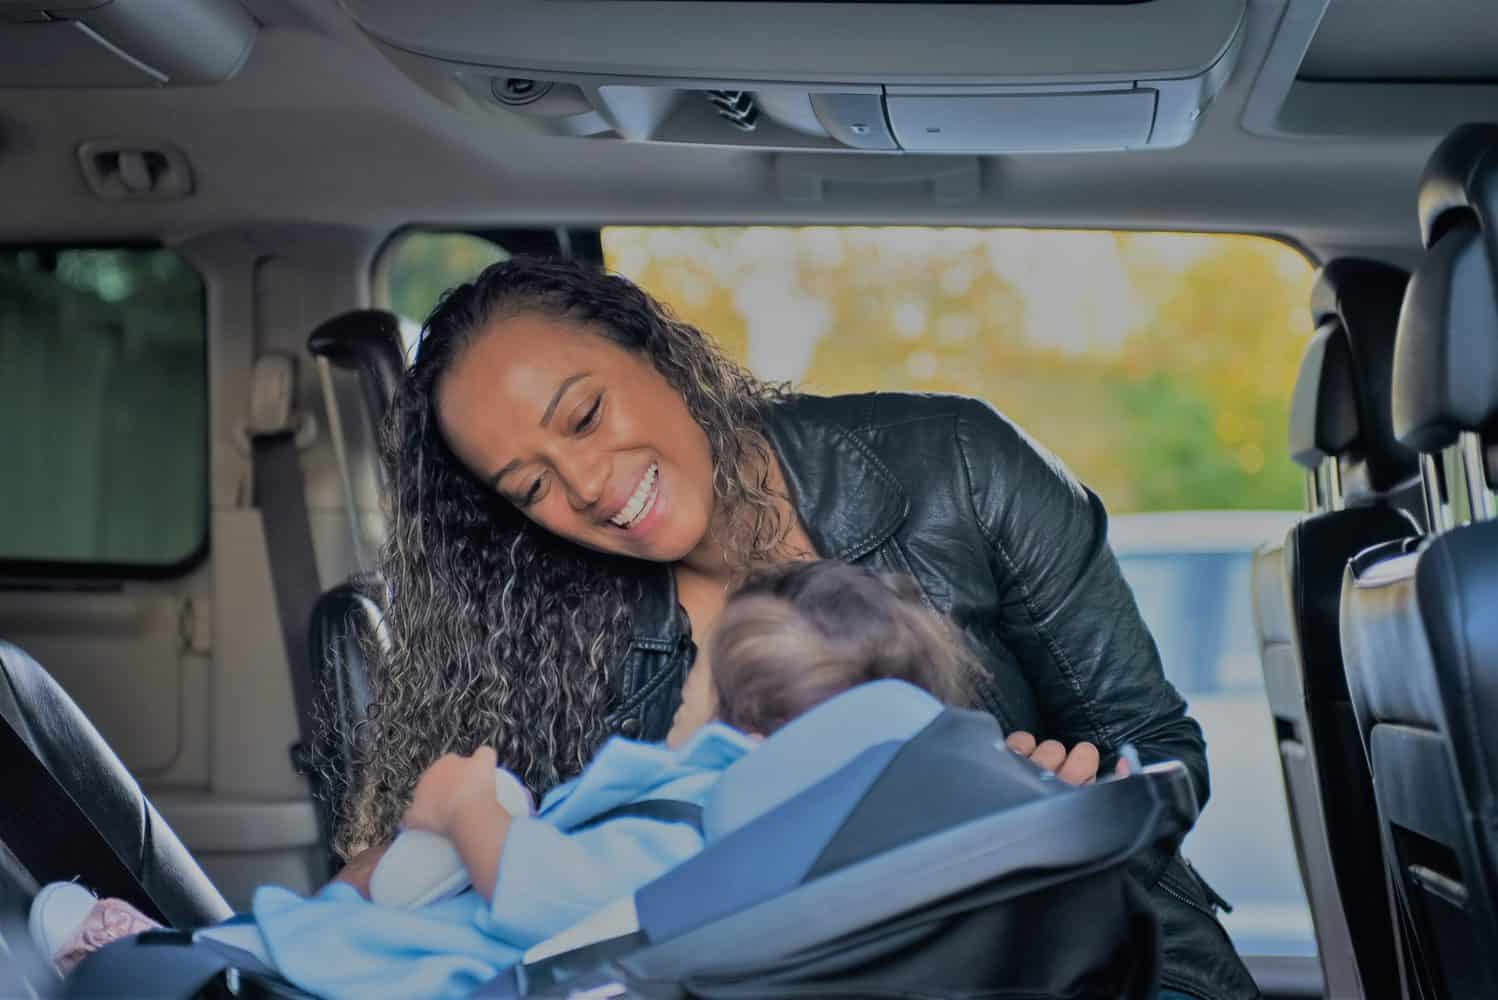 a mother puting her baby in the carseat